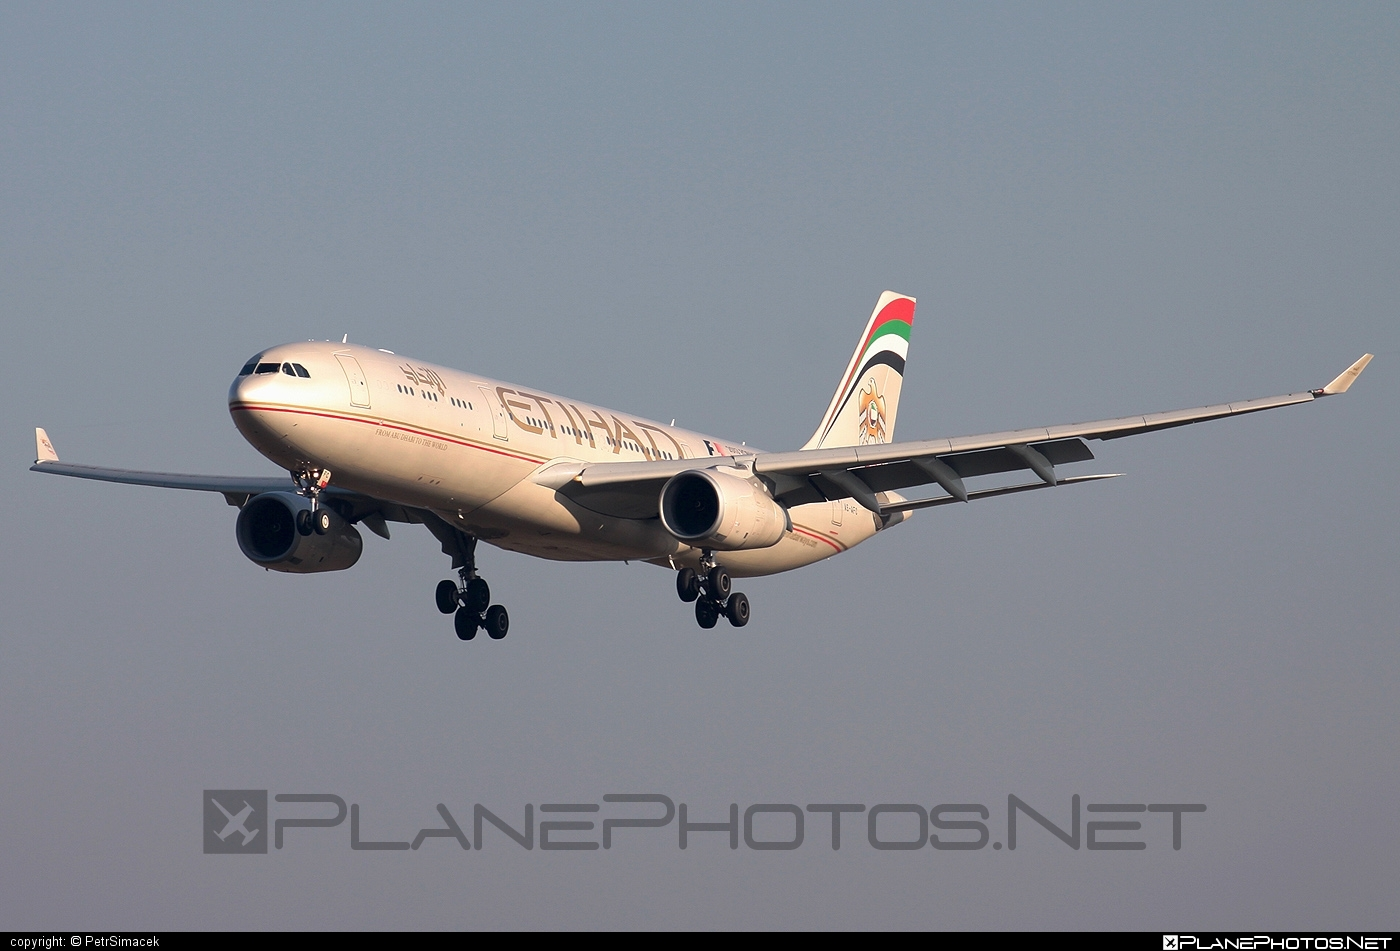 Airbus A330-343E - A6-AFC operated by Etihad Airways #a330 #a330e #a330family #airbus #airbus330 #etihad #etihadairways